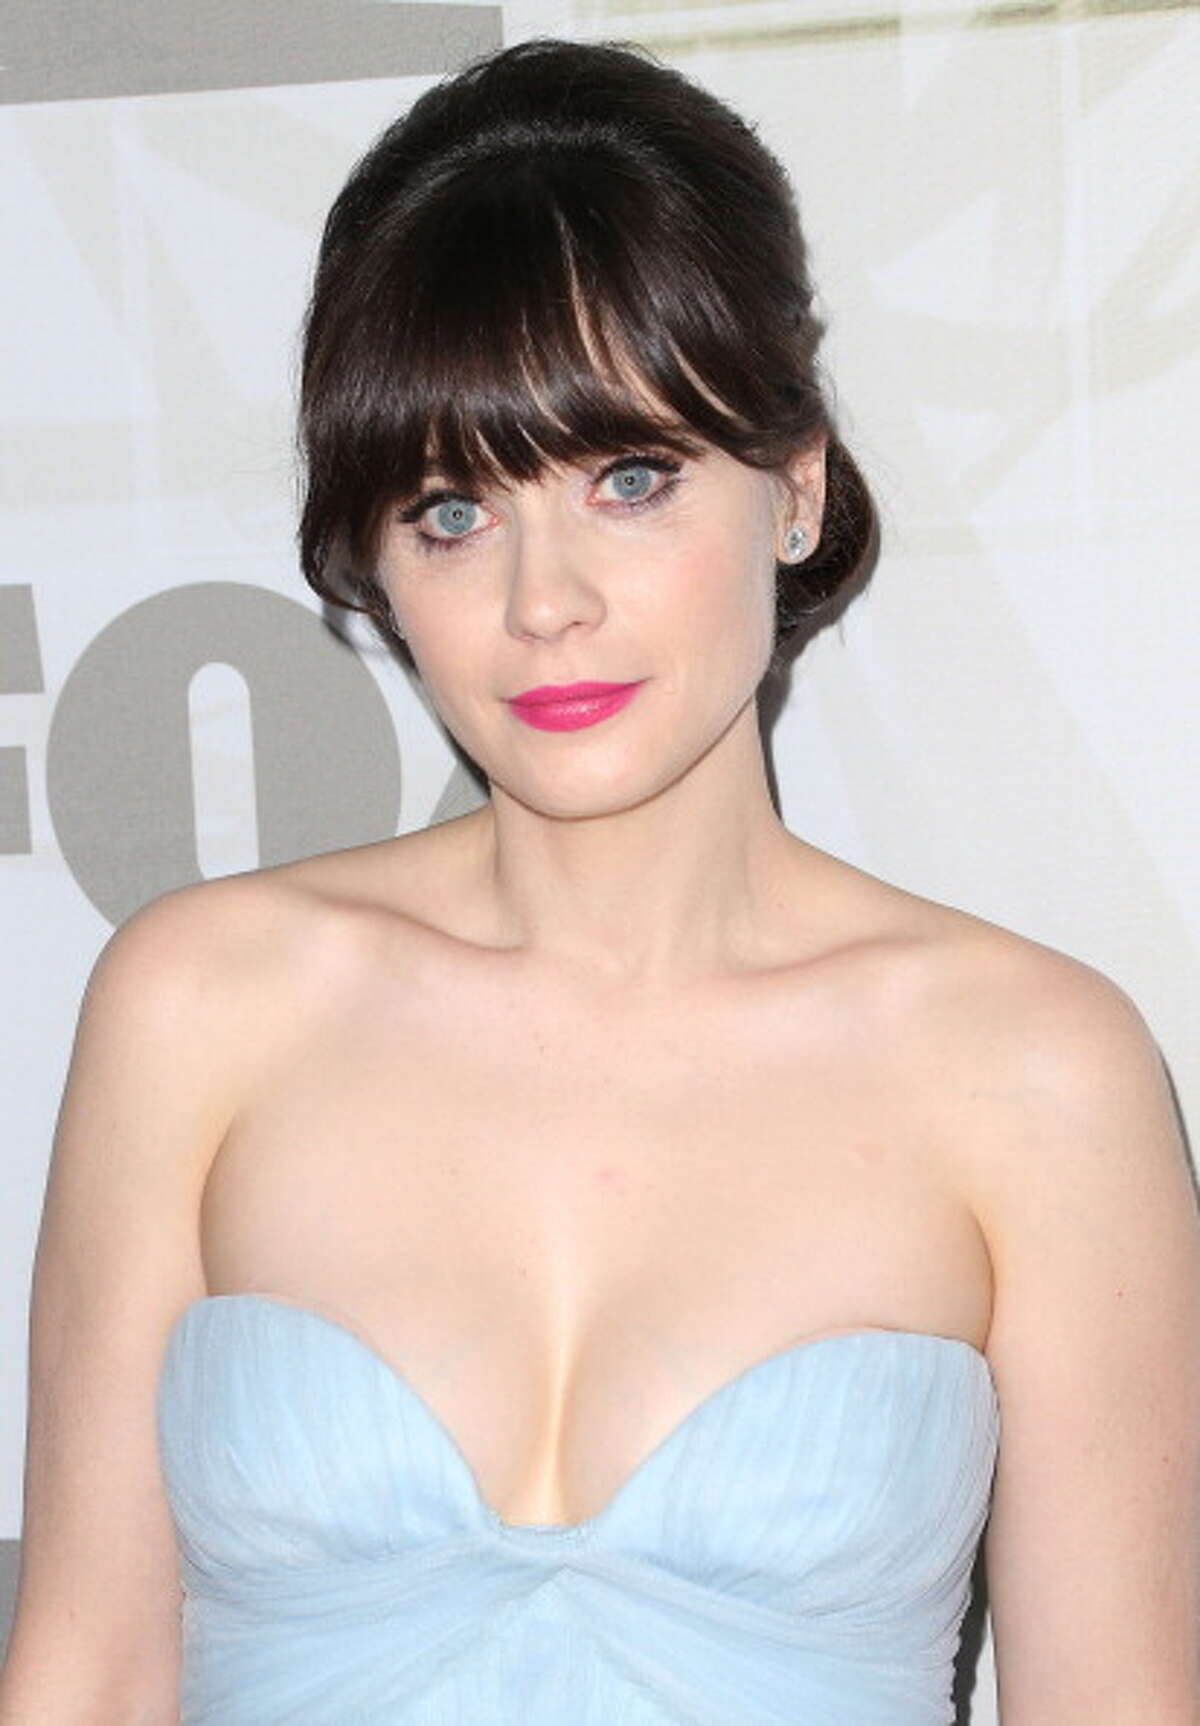 'New Girl' star Zooey Deschanel has some of the most striking, big blue eyes in Hollywood.